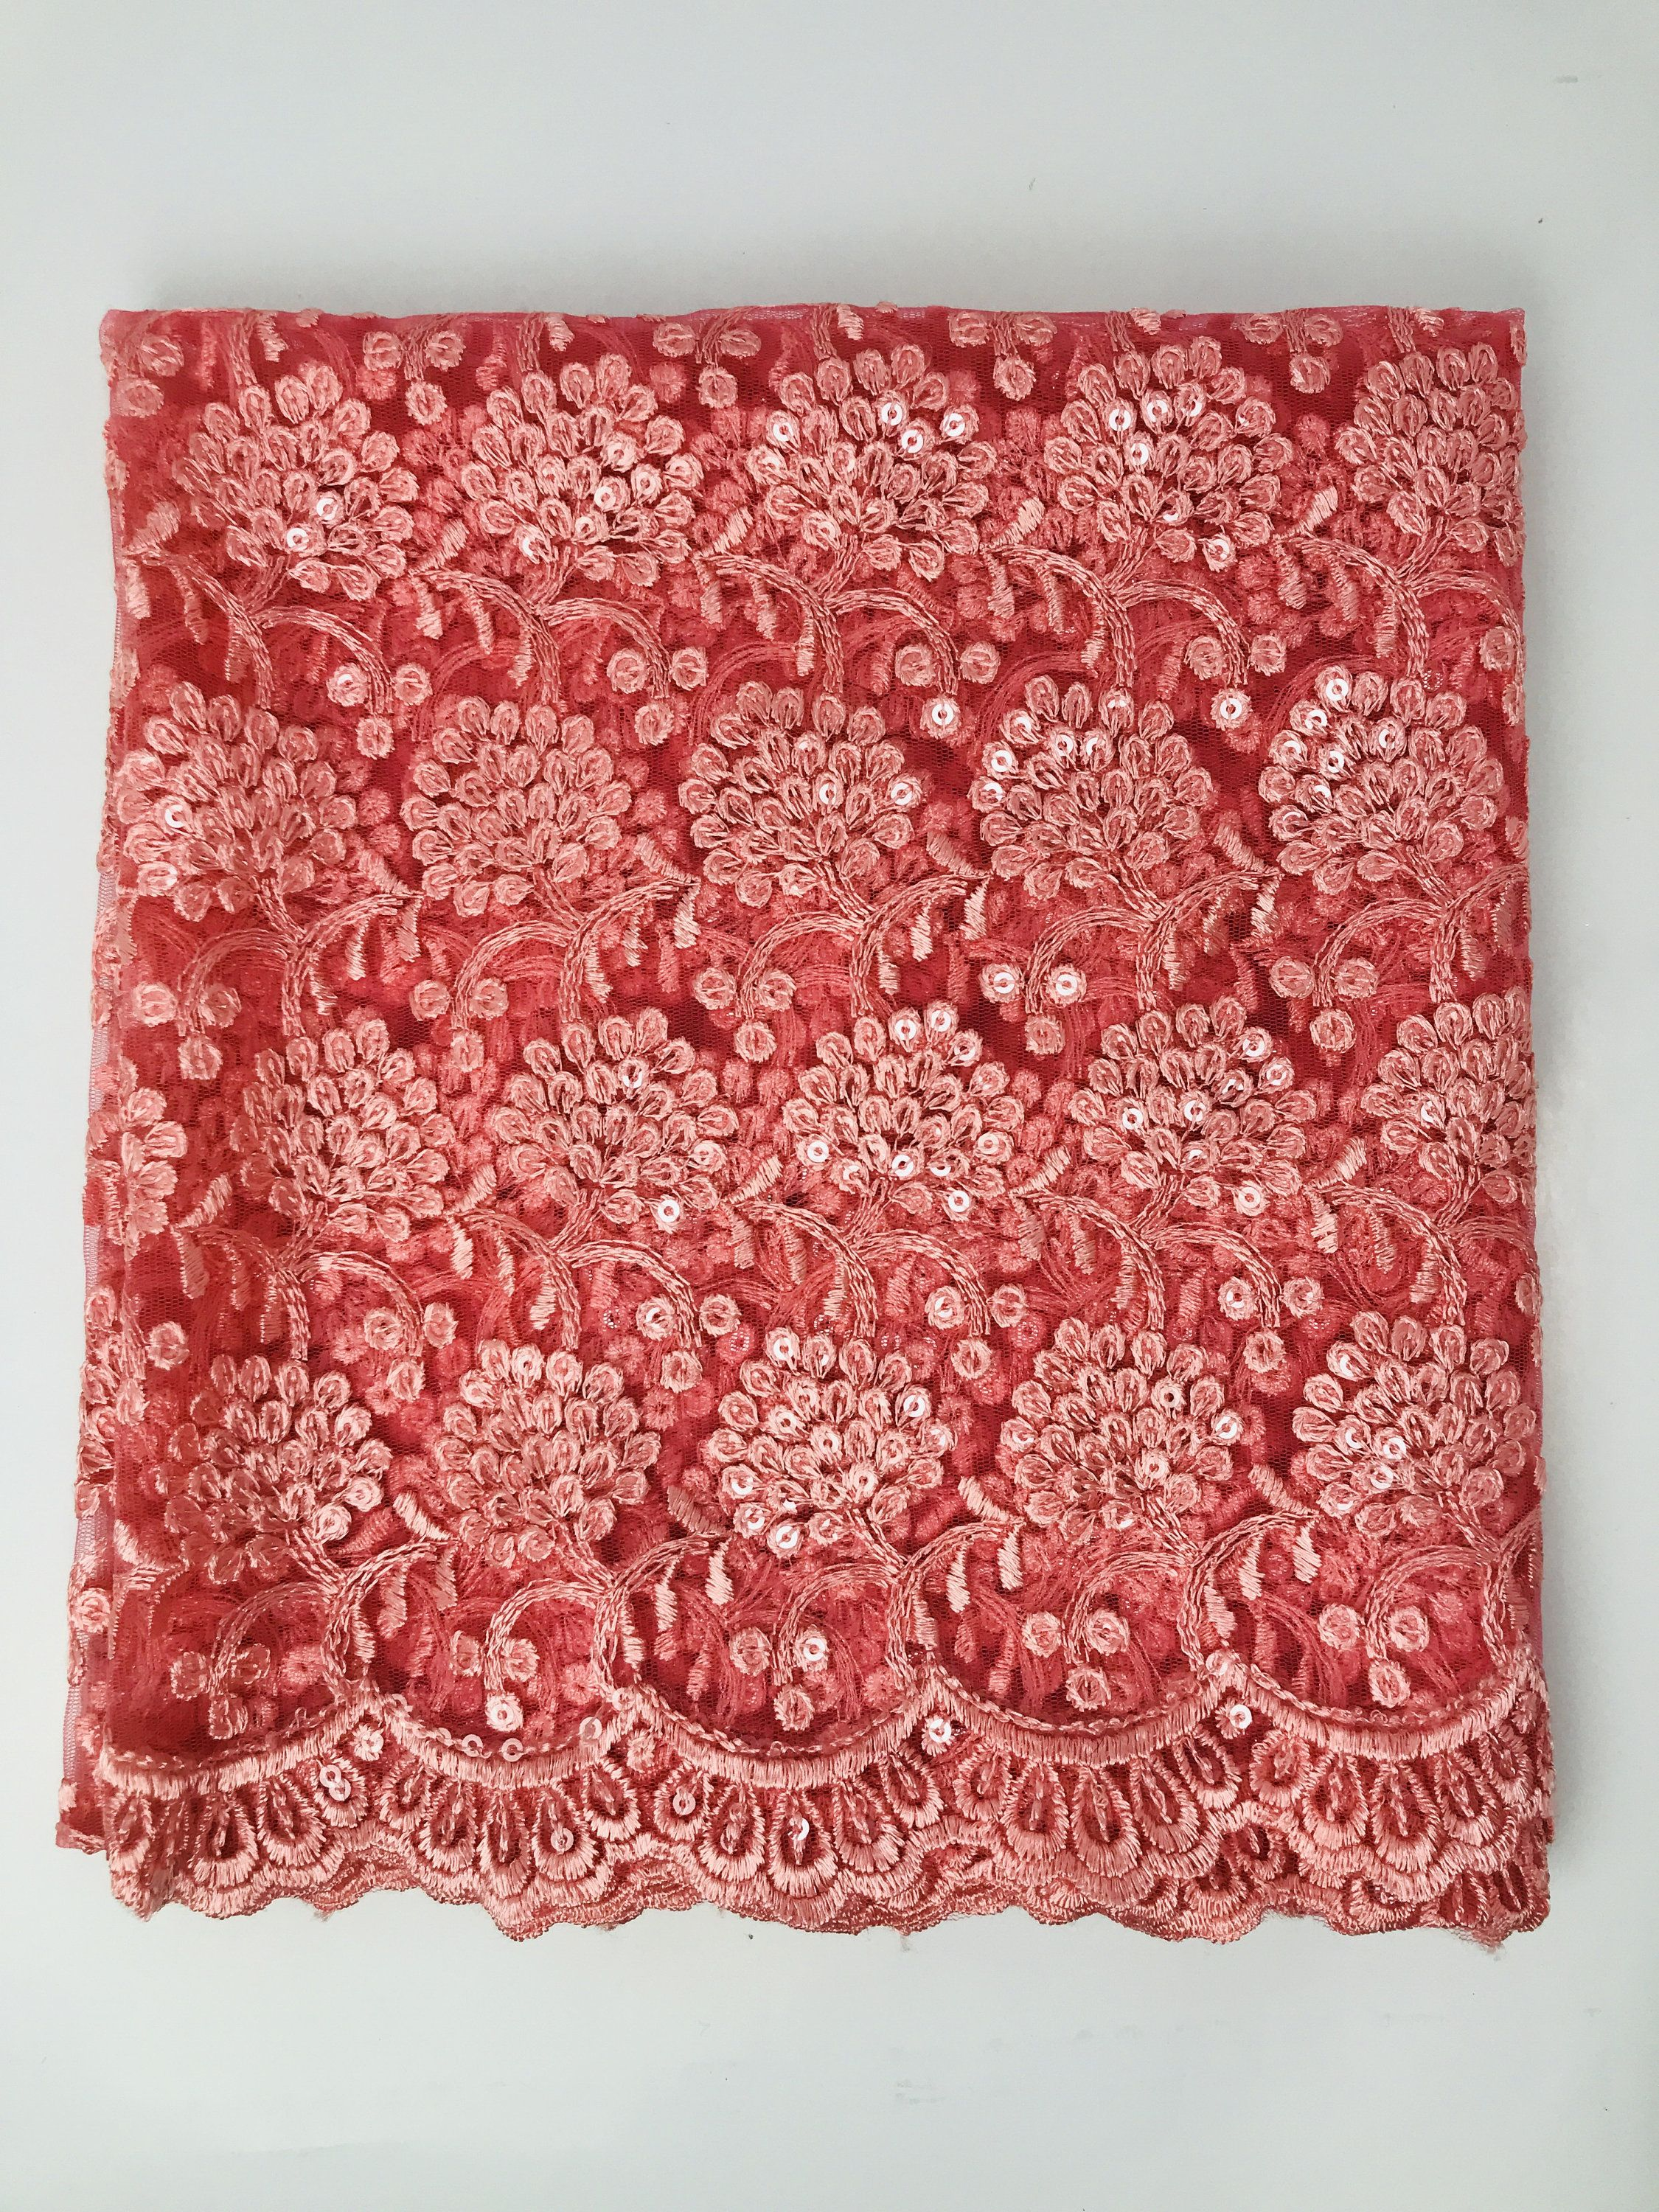 Half Yard Floral Embroidered Net Fabric Indian Lehenga Dupatta Fabric Embroidered Bags Table Runner Art Quilts FabStitchIN